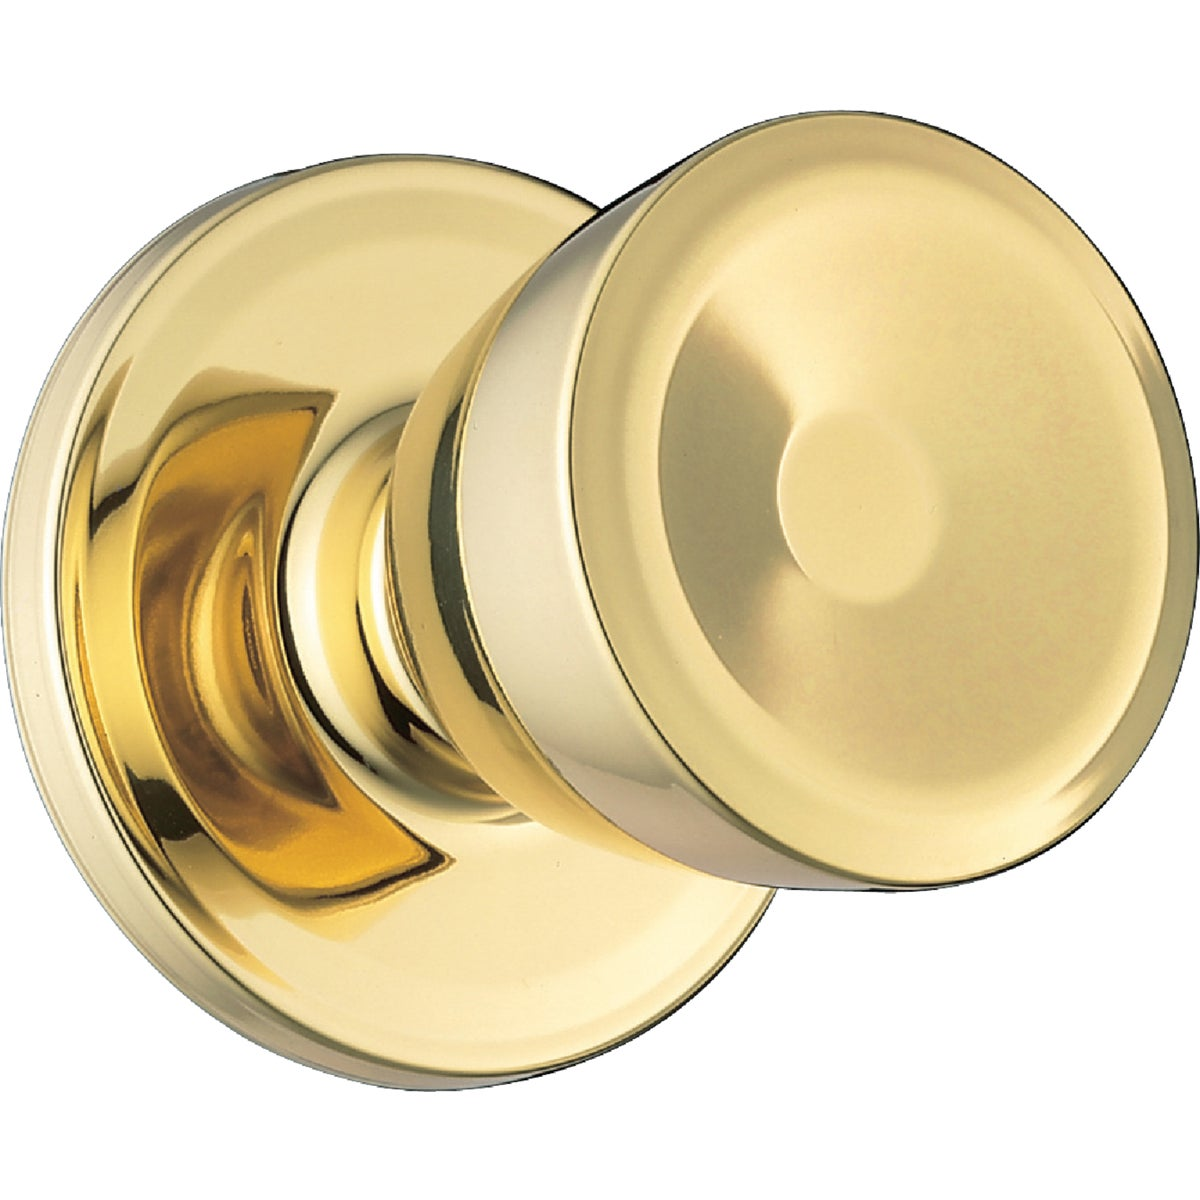 PB BEVERLY PASS LOCKSET